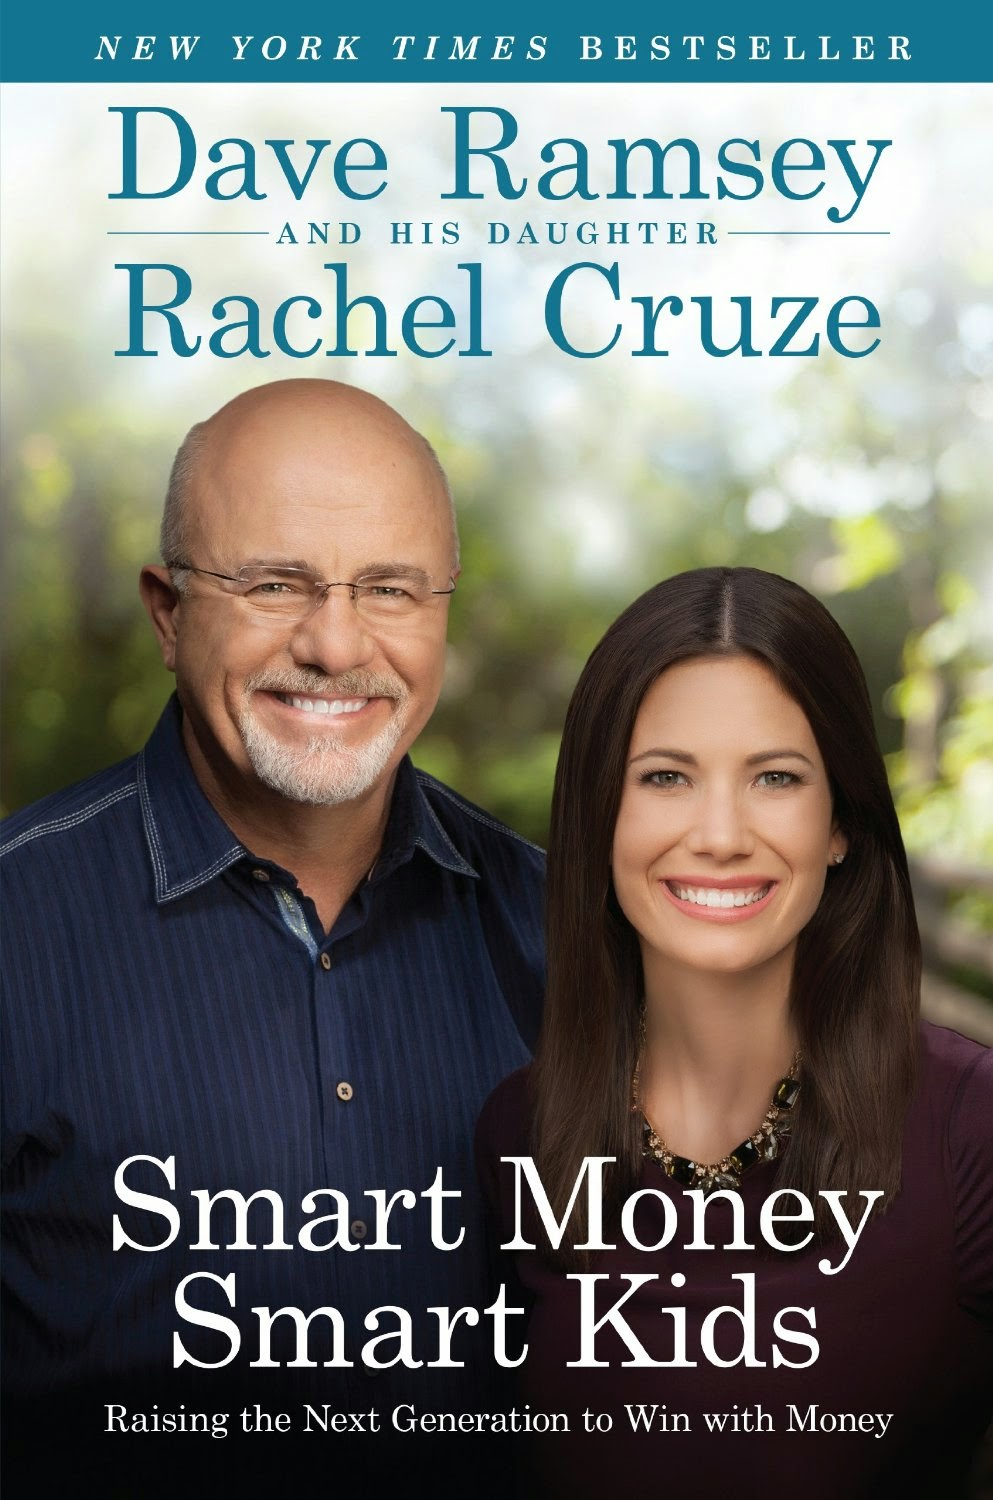 http://www.5minutesformom.com/89923/dave-ramsey-smart-money-smart-kids/